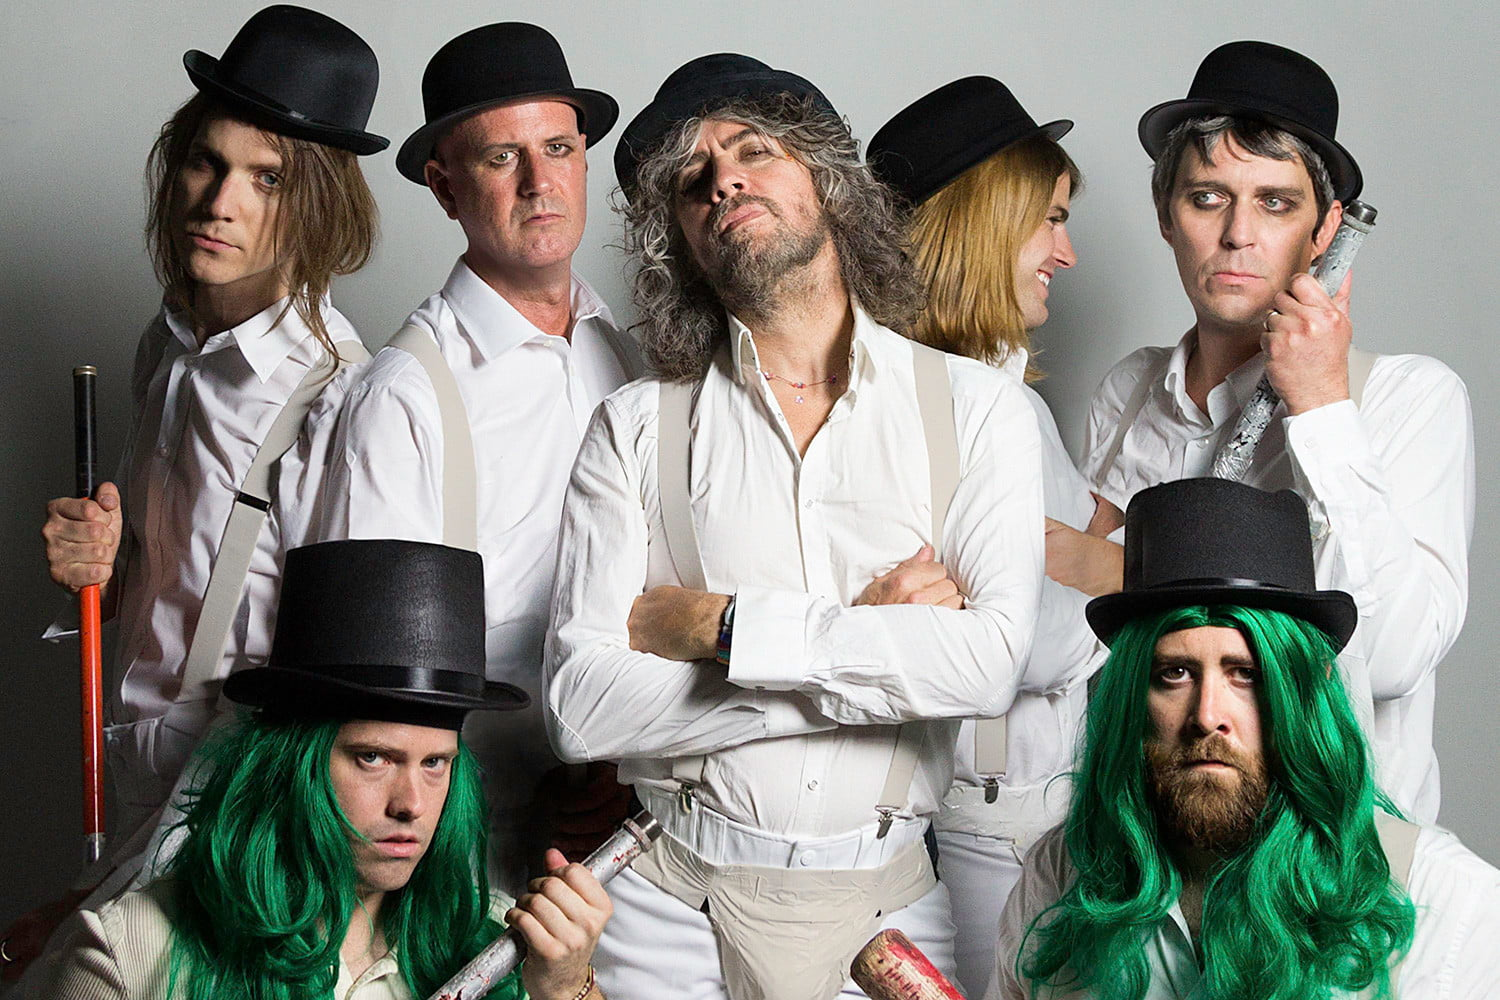 """The Flaming Lips Release New Video for """"Almost Home (Blisko Domu)"""""""